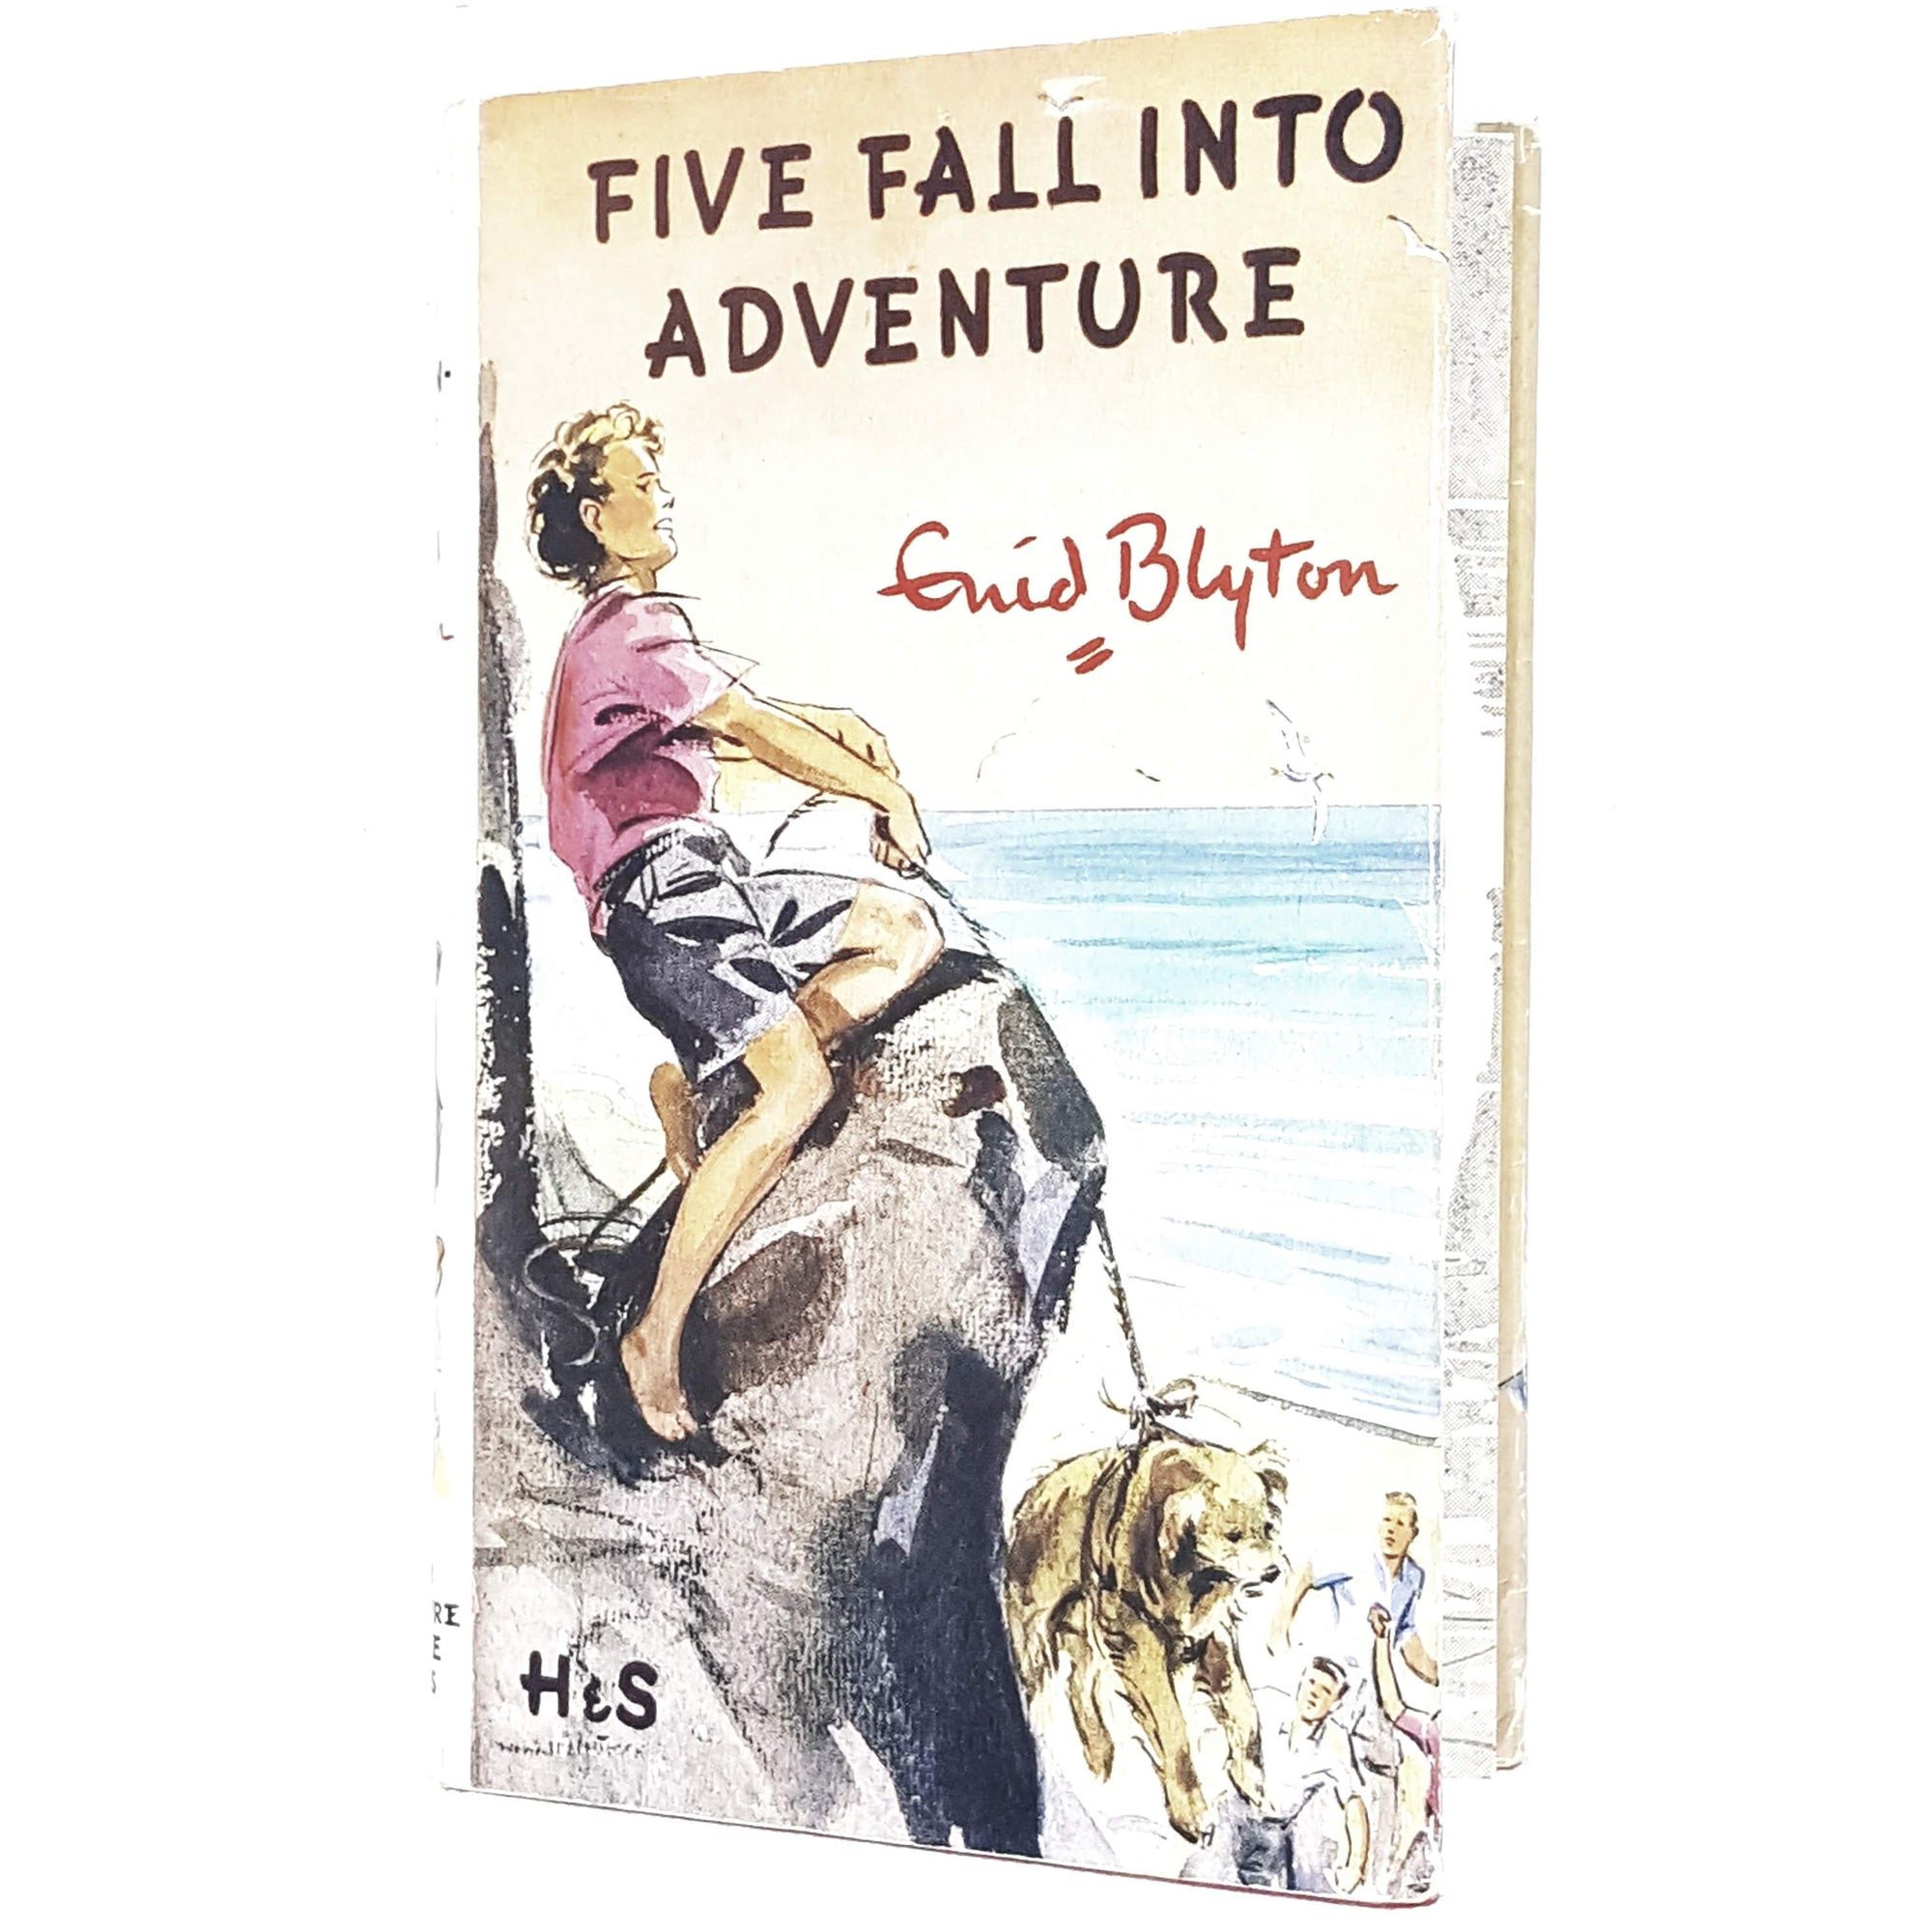 famous-five-enid-blyton-kids-illustrated-vintage-book-country-library-book